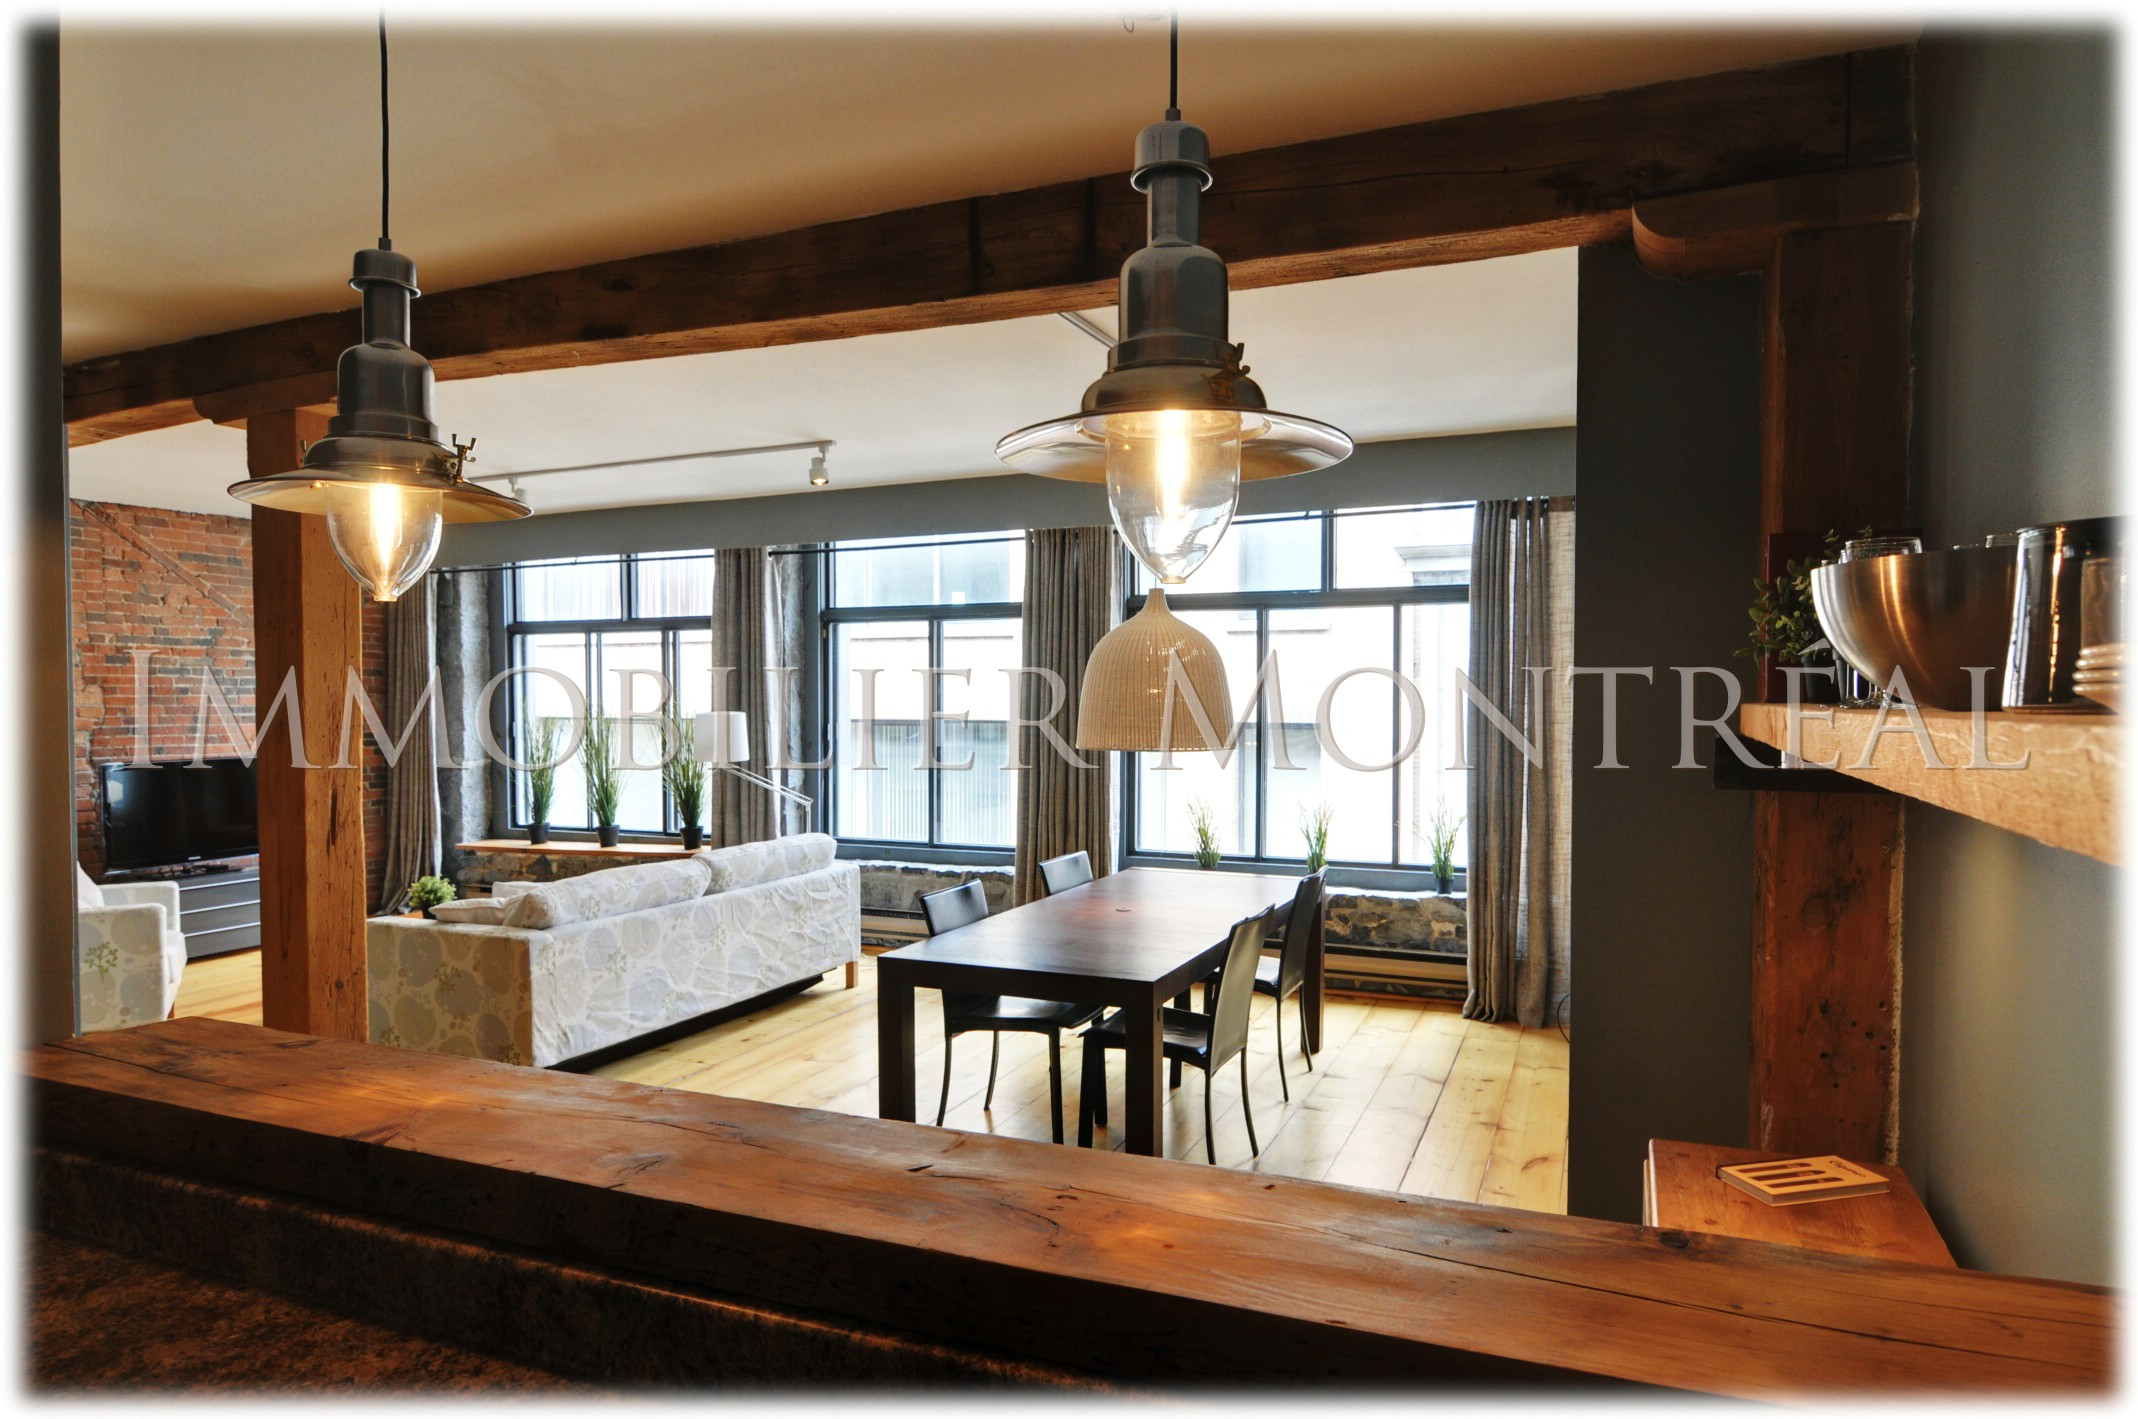 Loft mia location appartements meubl s montreal for Entrepot meuble montreal